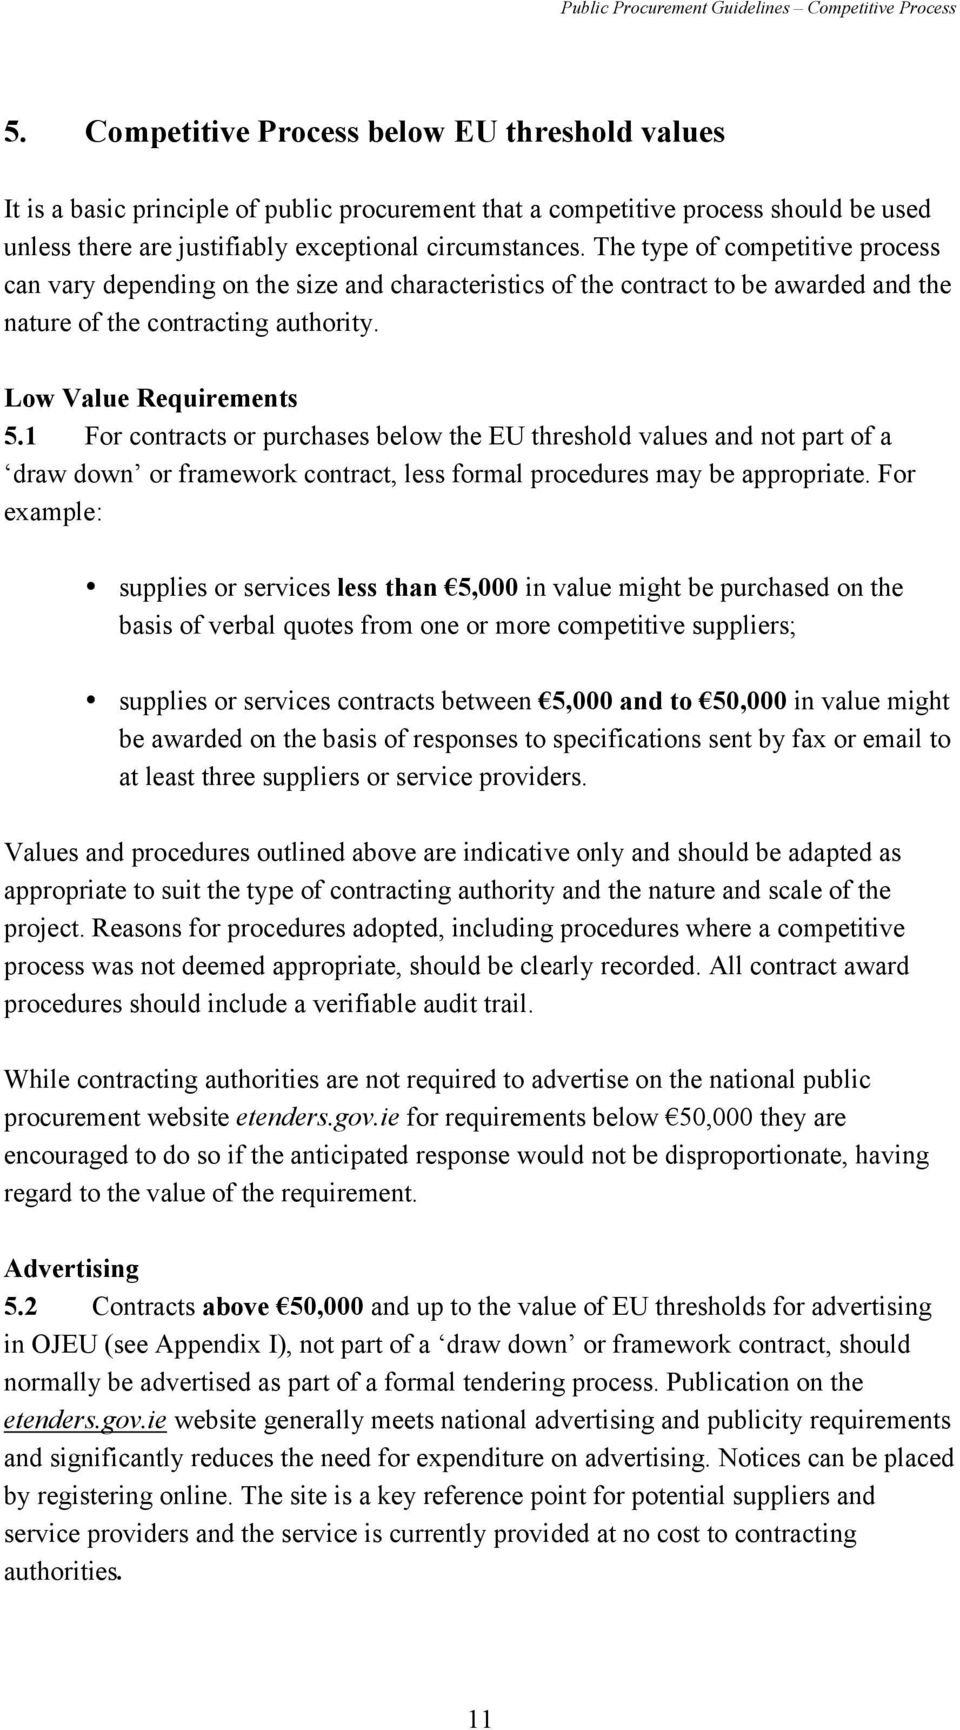 1 For contracts or purchases below the EU threshold values and not part of a draw down or framework contract, less formal procedures may be appropriate.